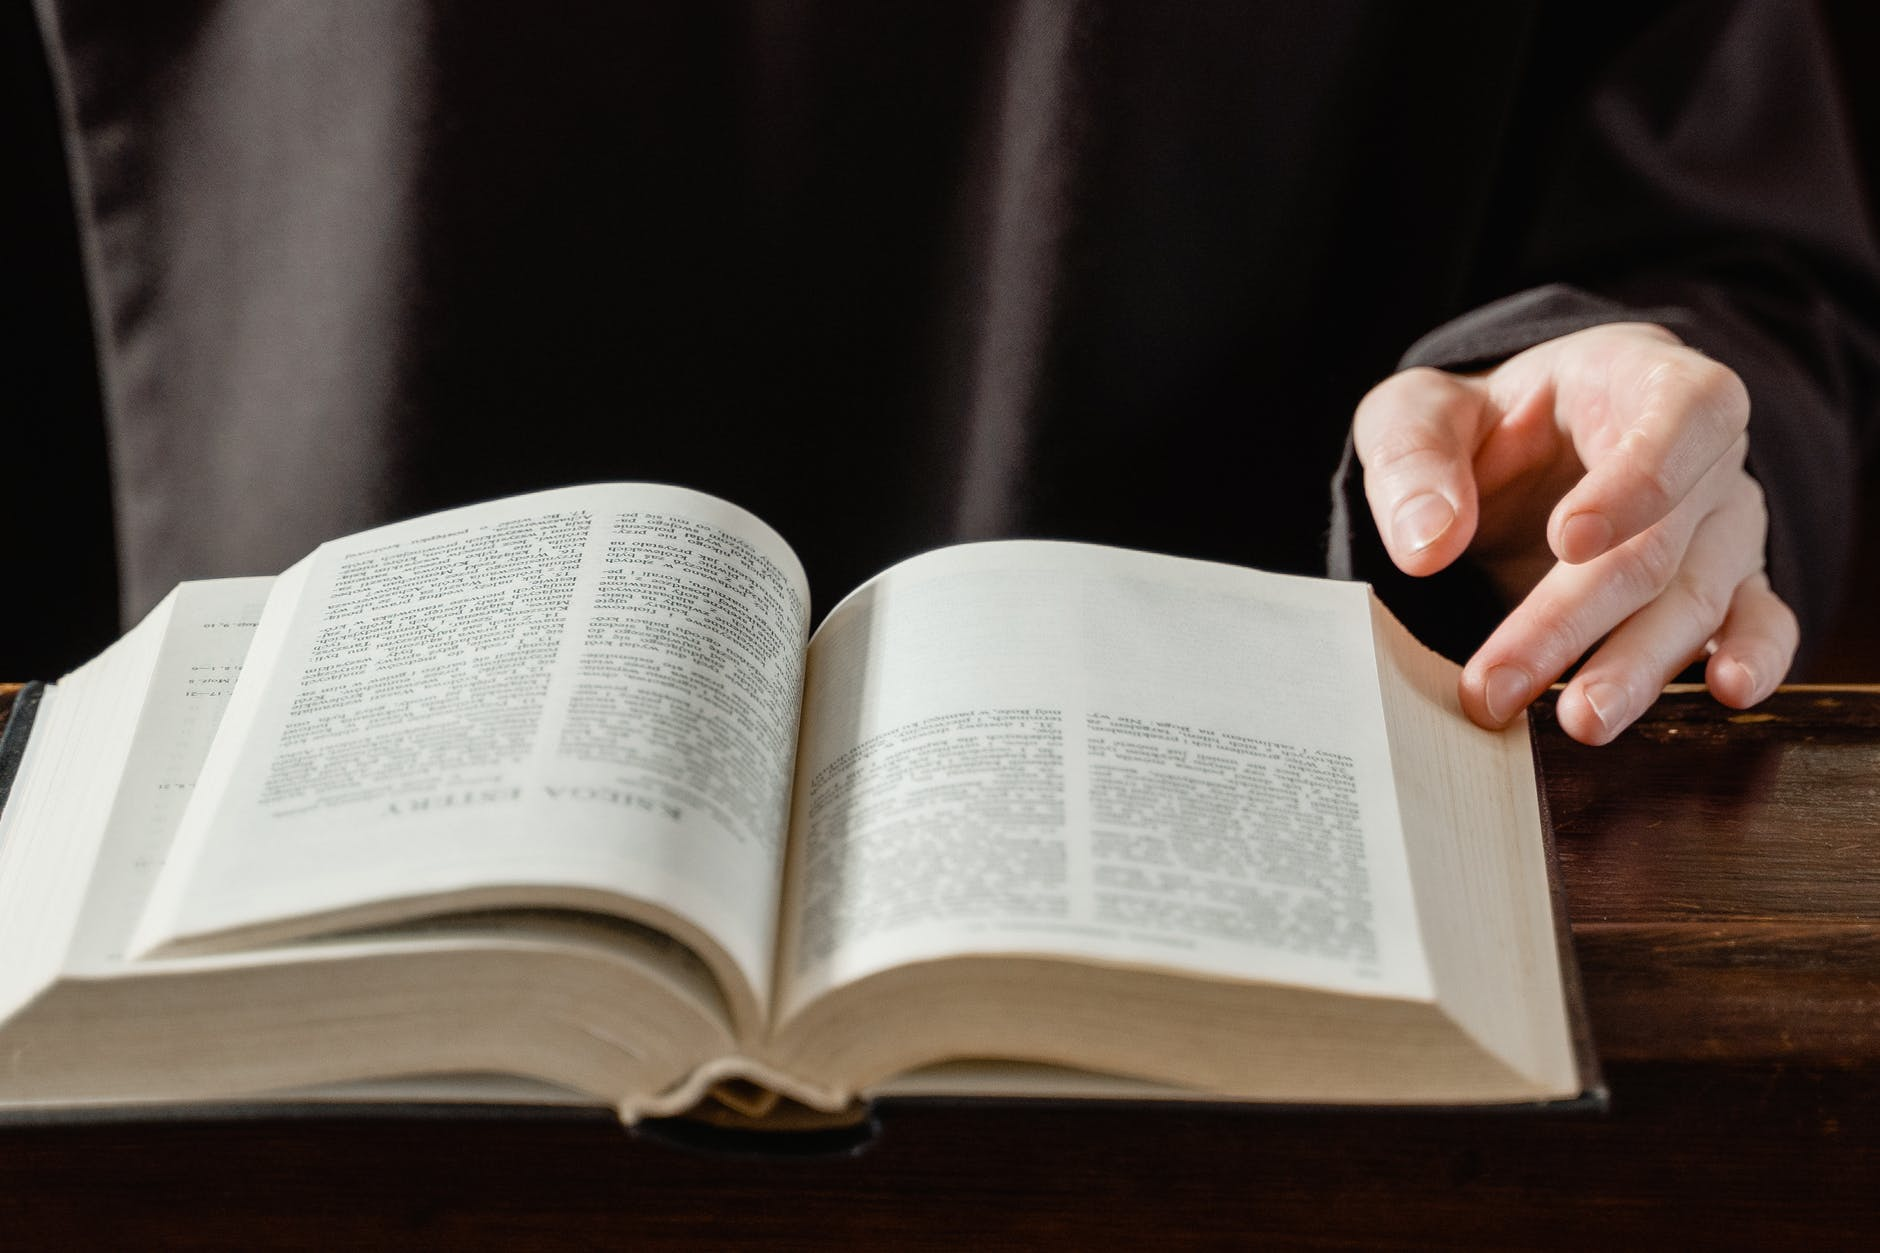 A close up of an open bible | Source: Pexels